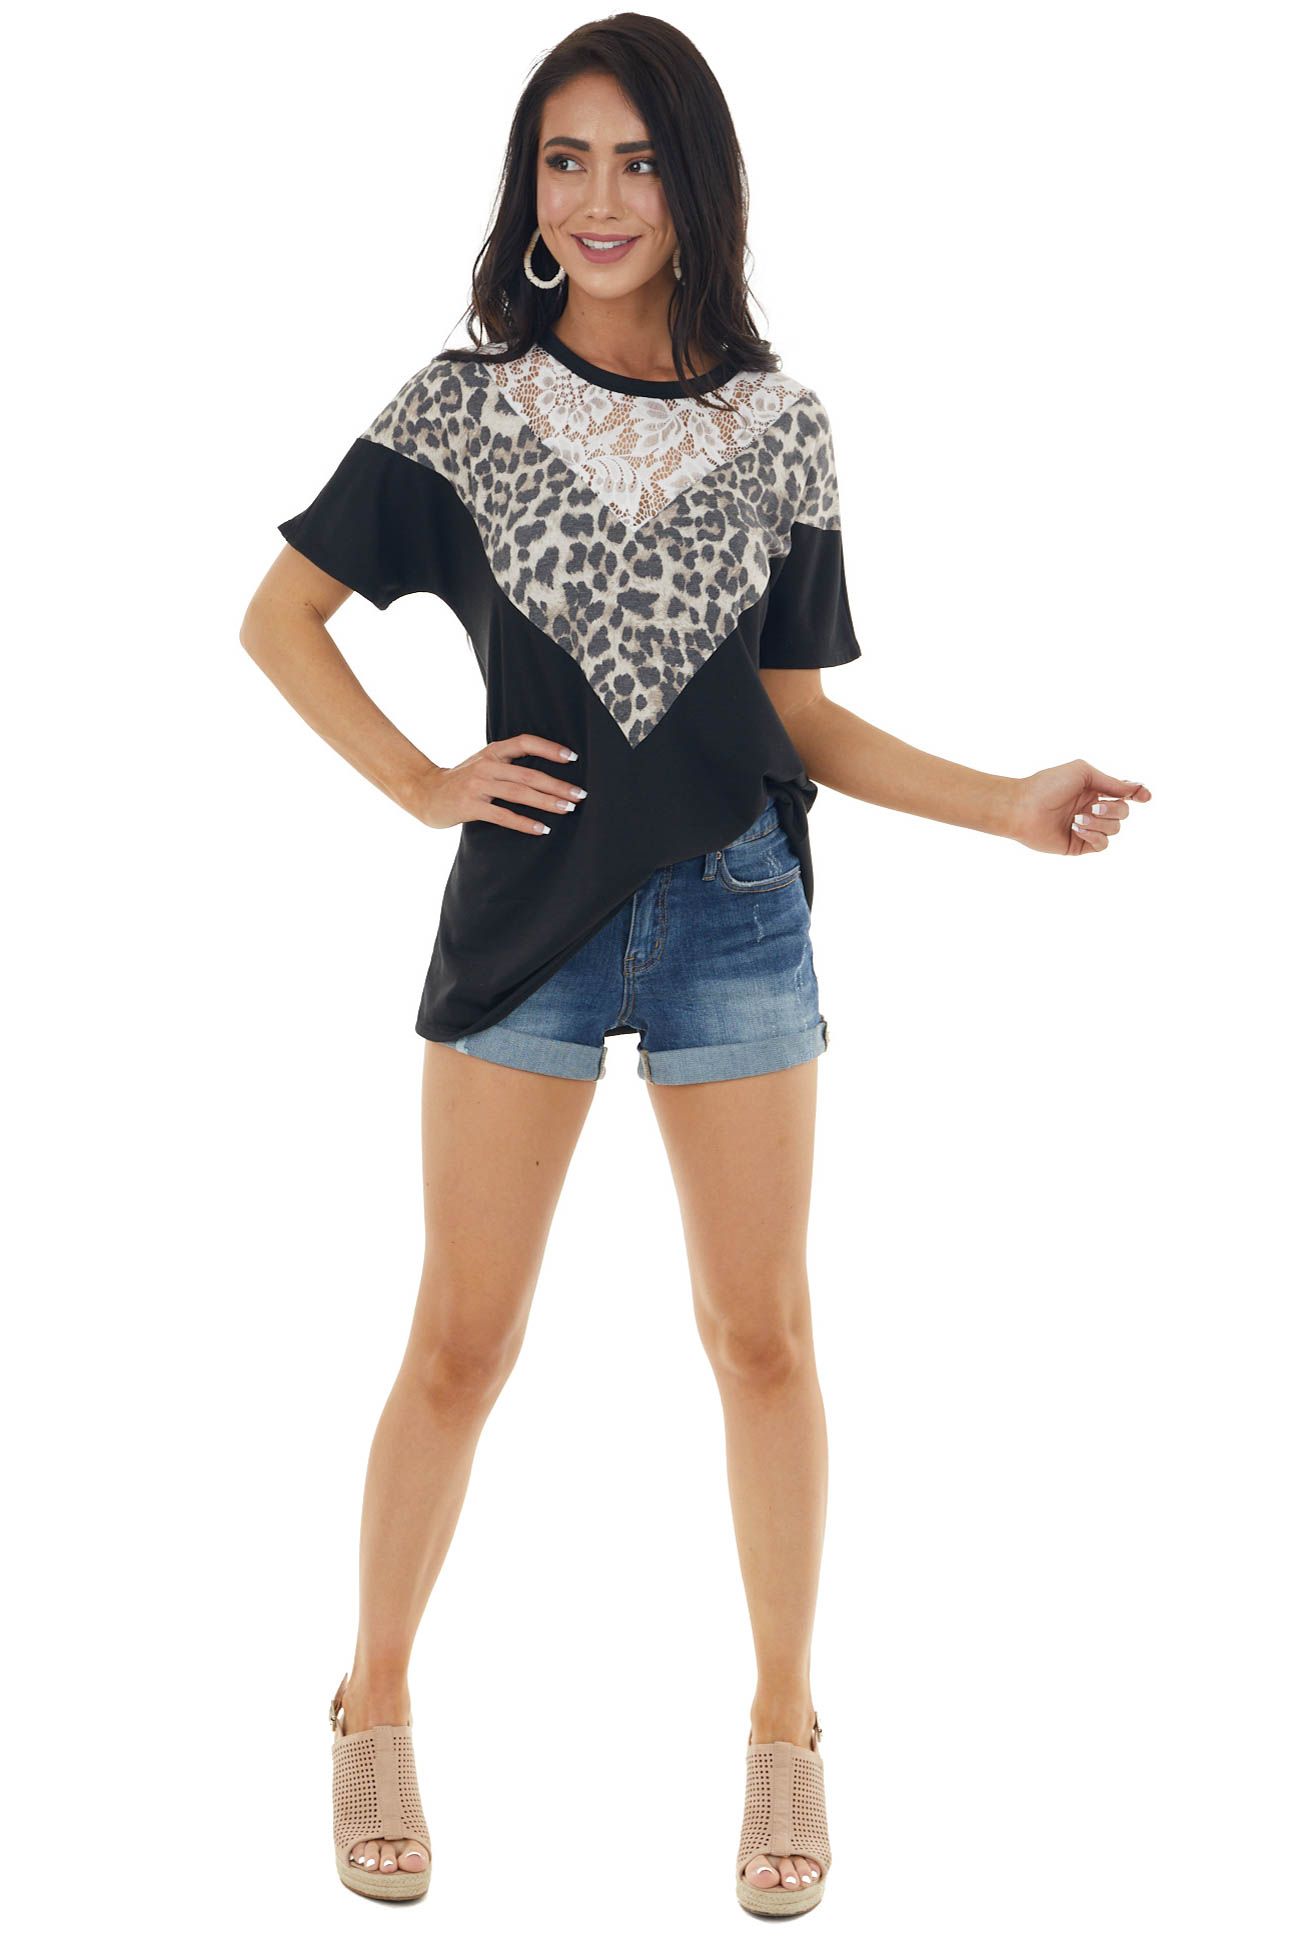 Black Short Sleeve Top with Lace and Leopard Print Neckline